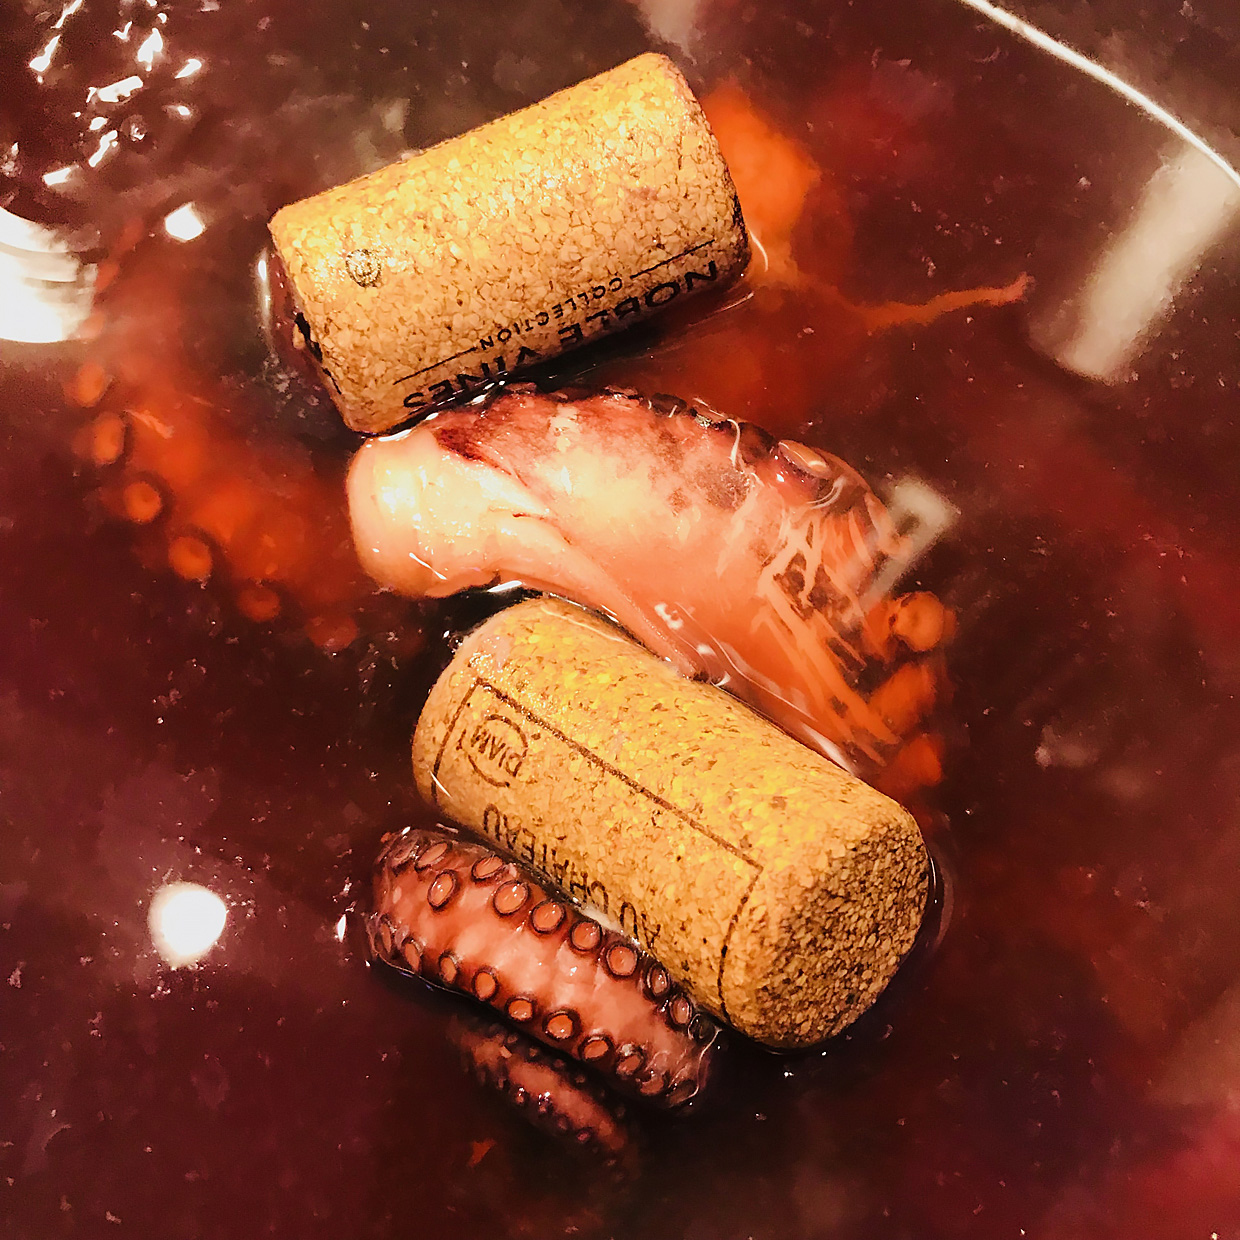 Octopus and corks